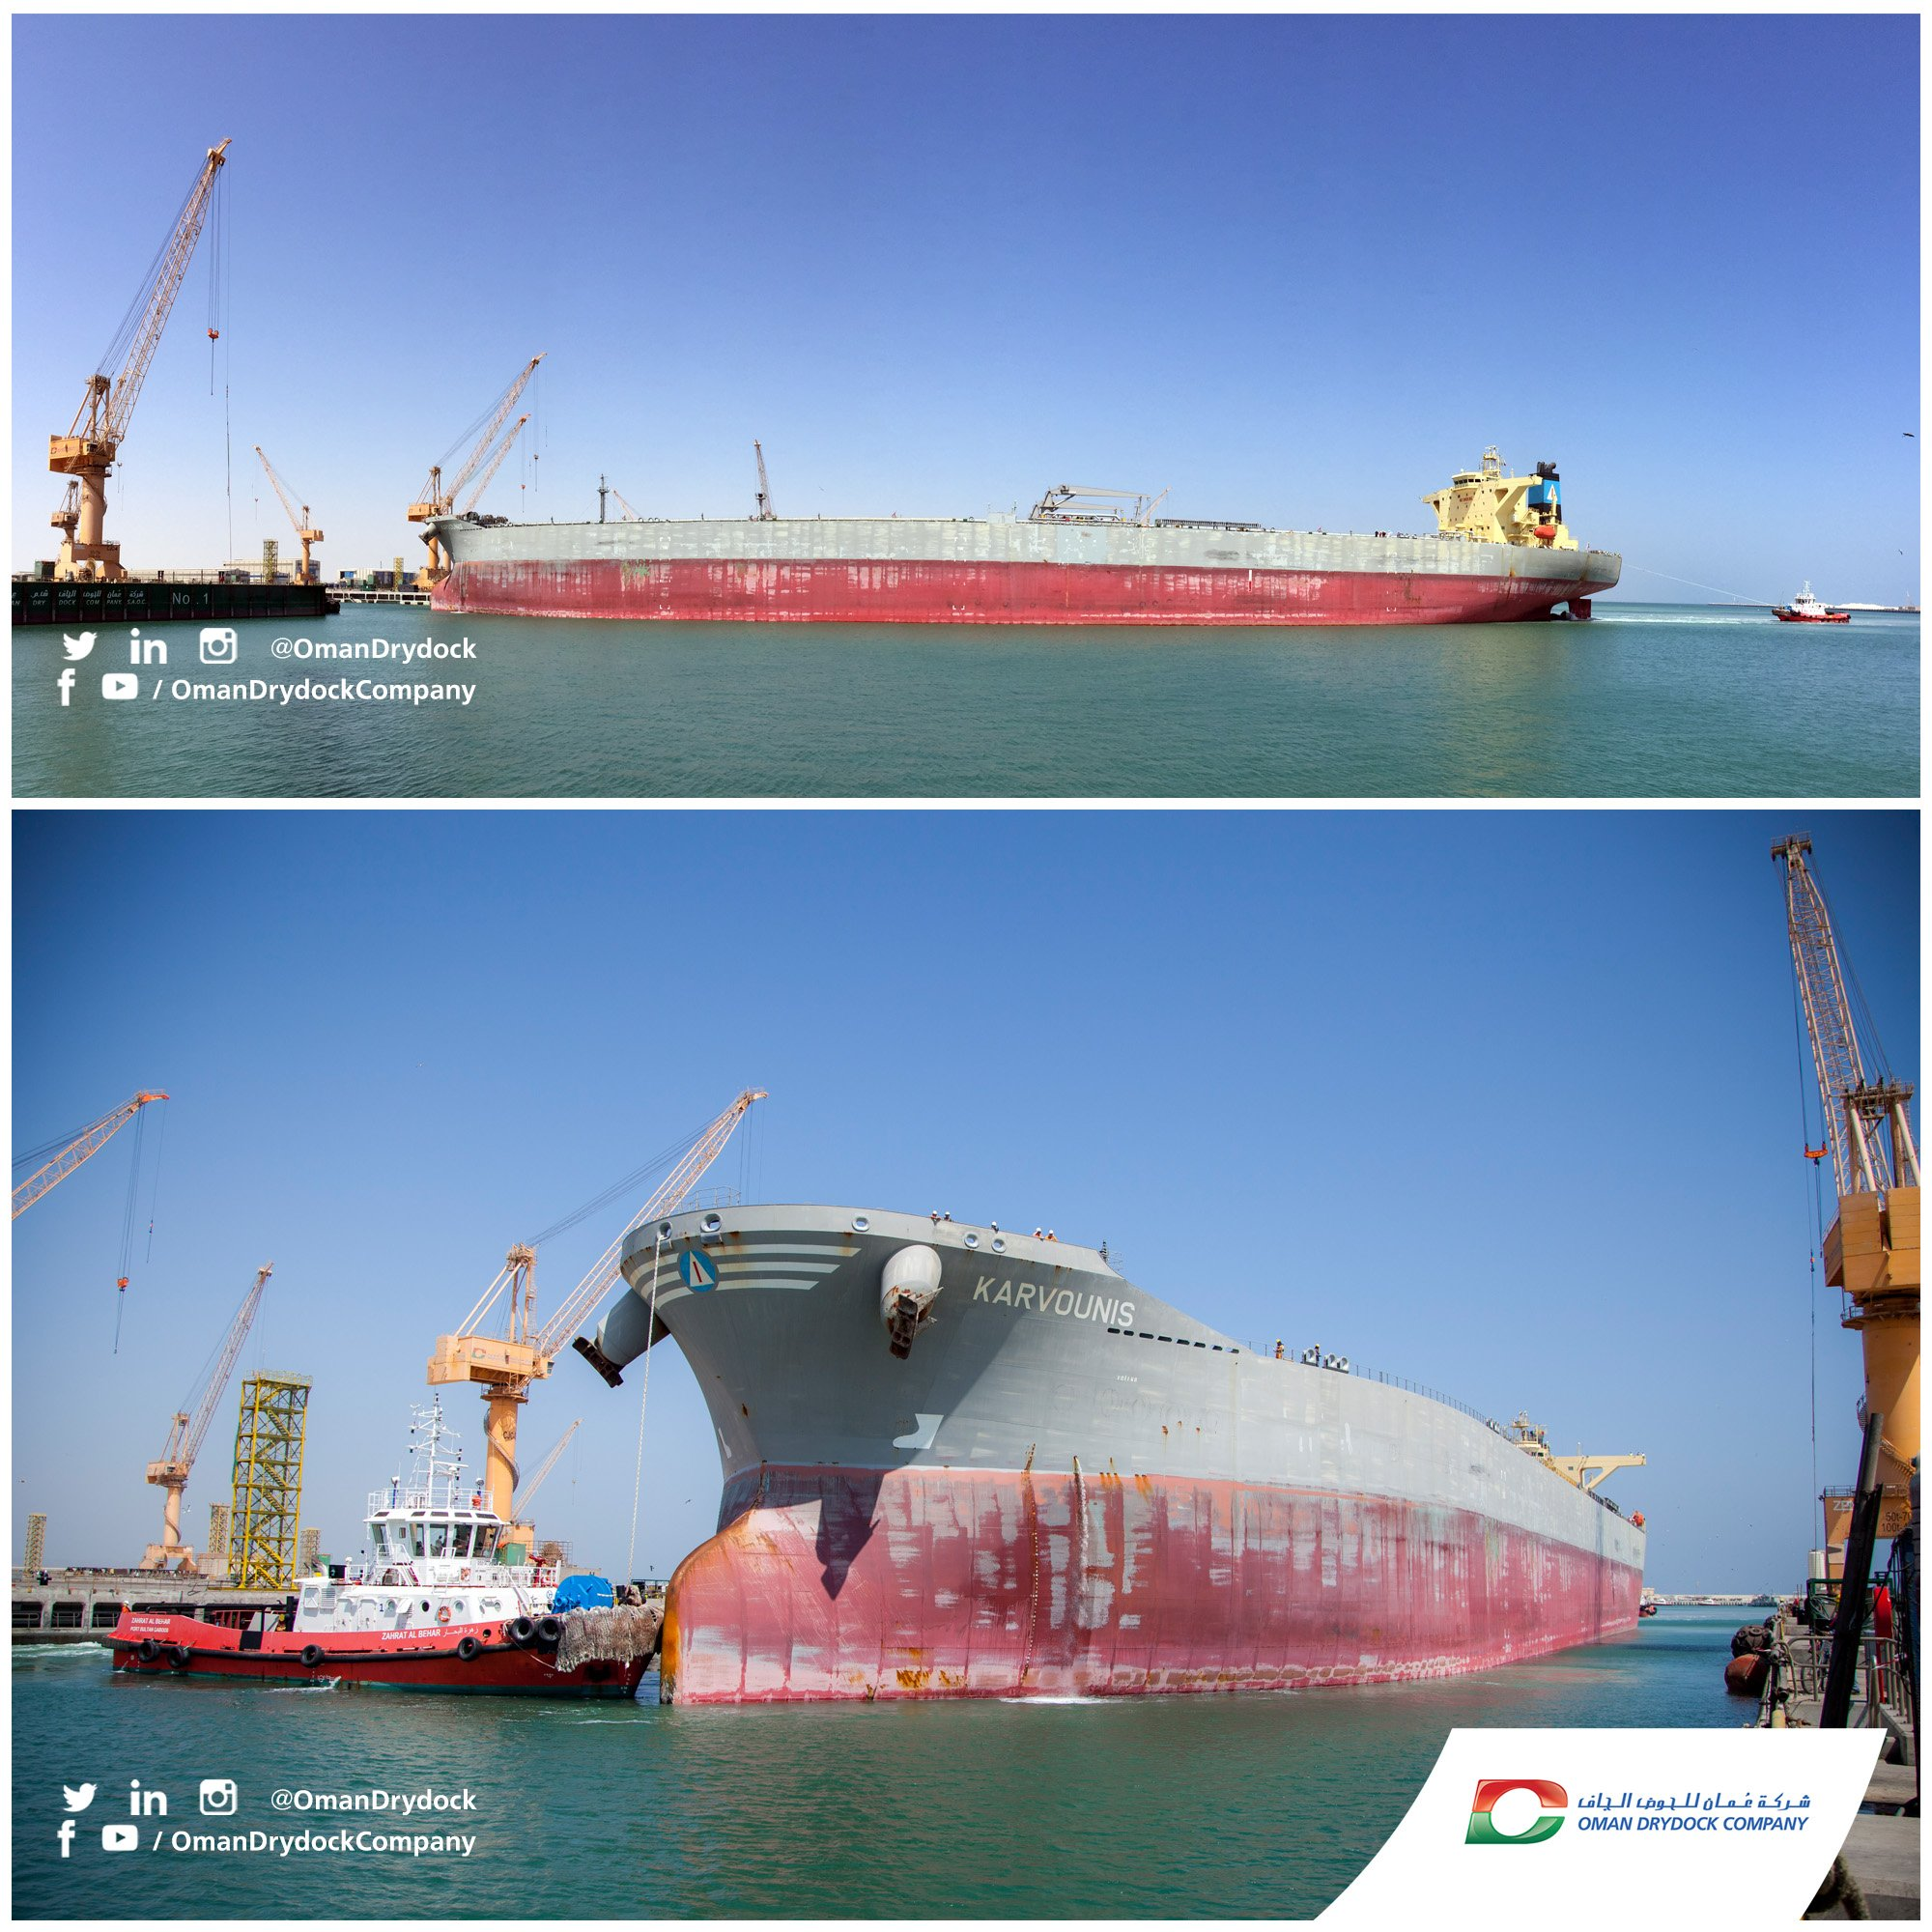 Oman Drydock Company On Twitter Greek Crude Oil Tanker Karavounis From Samos Steamship Co Enters The Graving Dock For General Repair Jobs At Oman Drydock Https T Co Xtgjzp4n7m